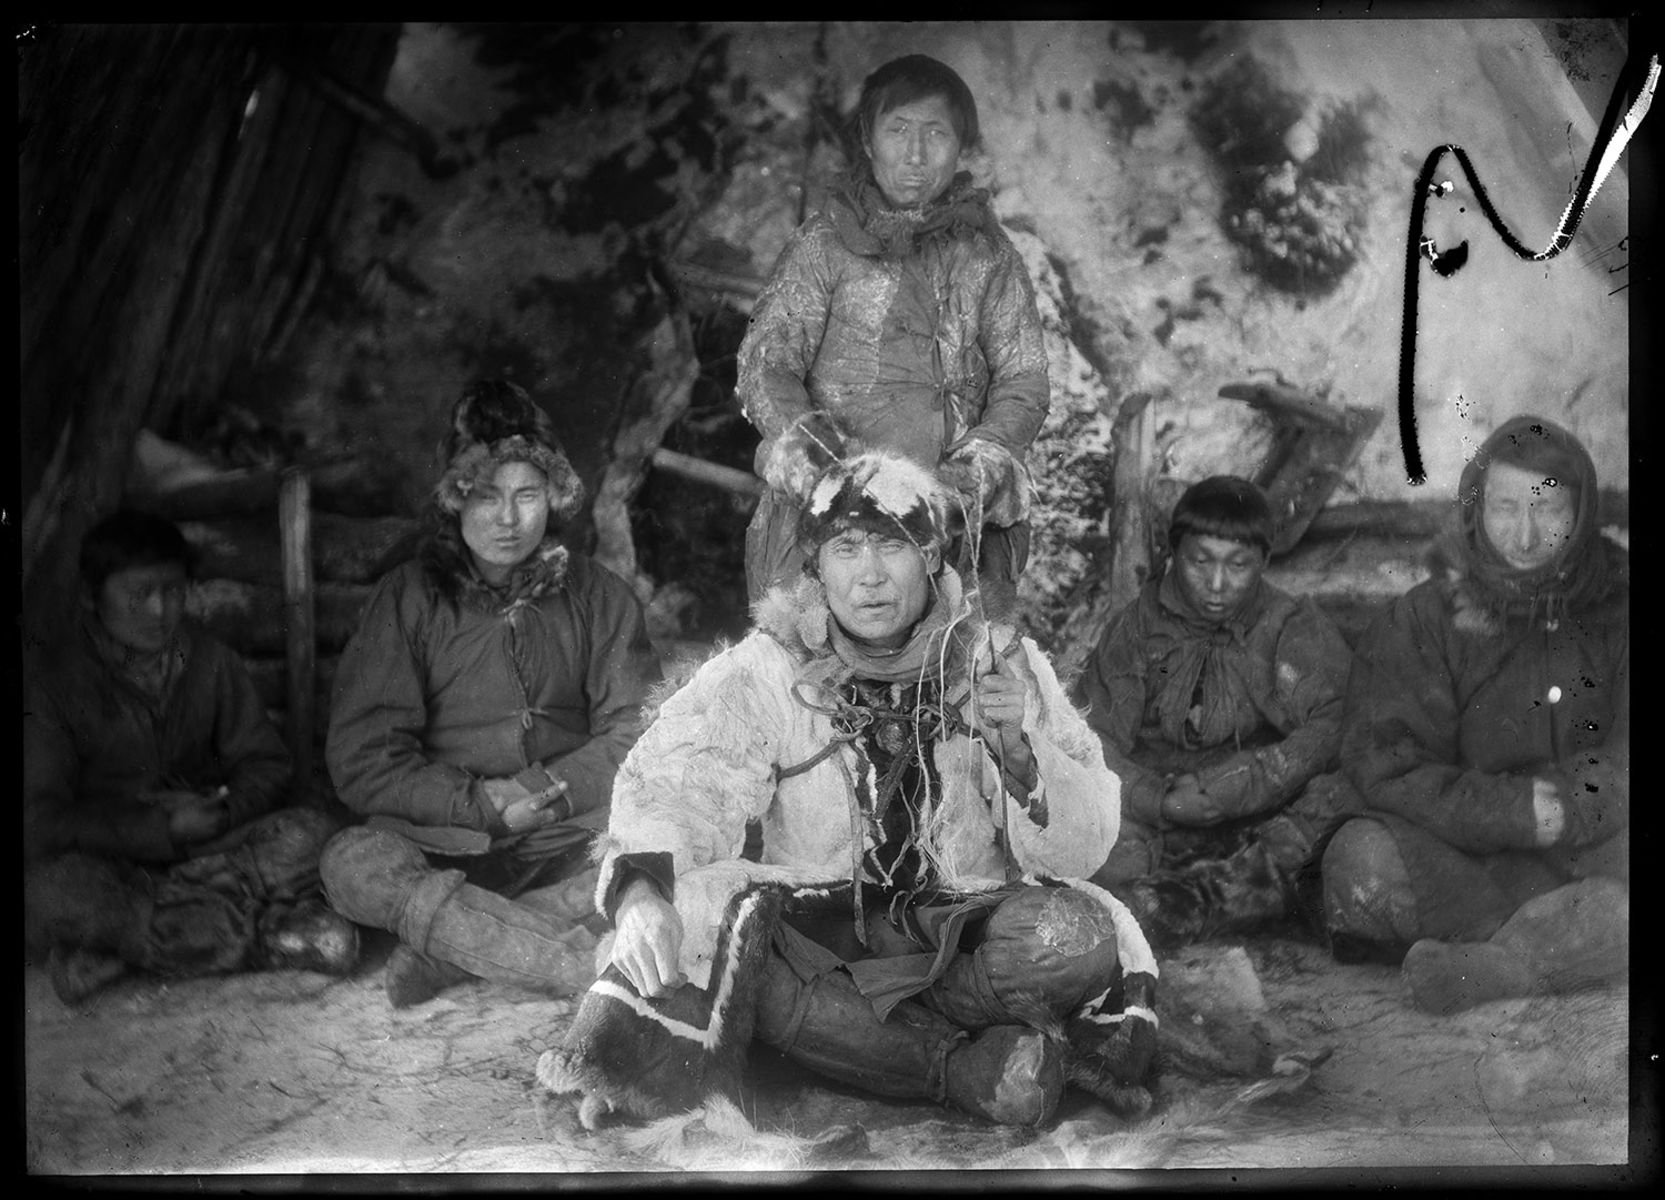 Yakut man dressed in decorative robes and headgear is seated on the ground in front of five other yakut men.